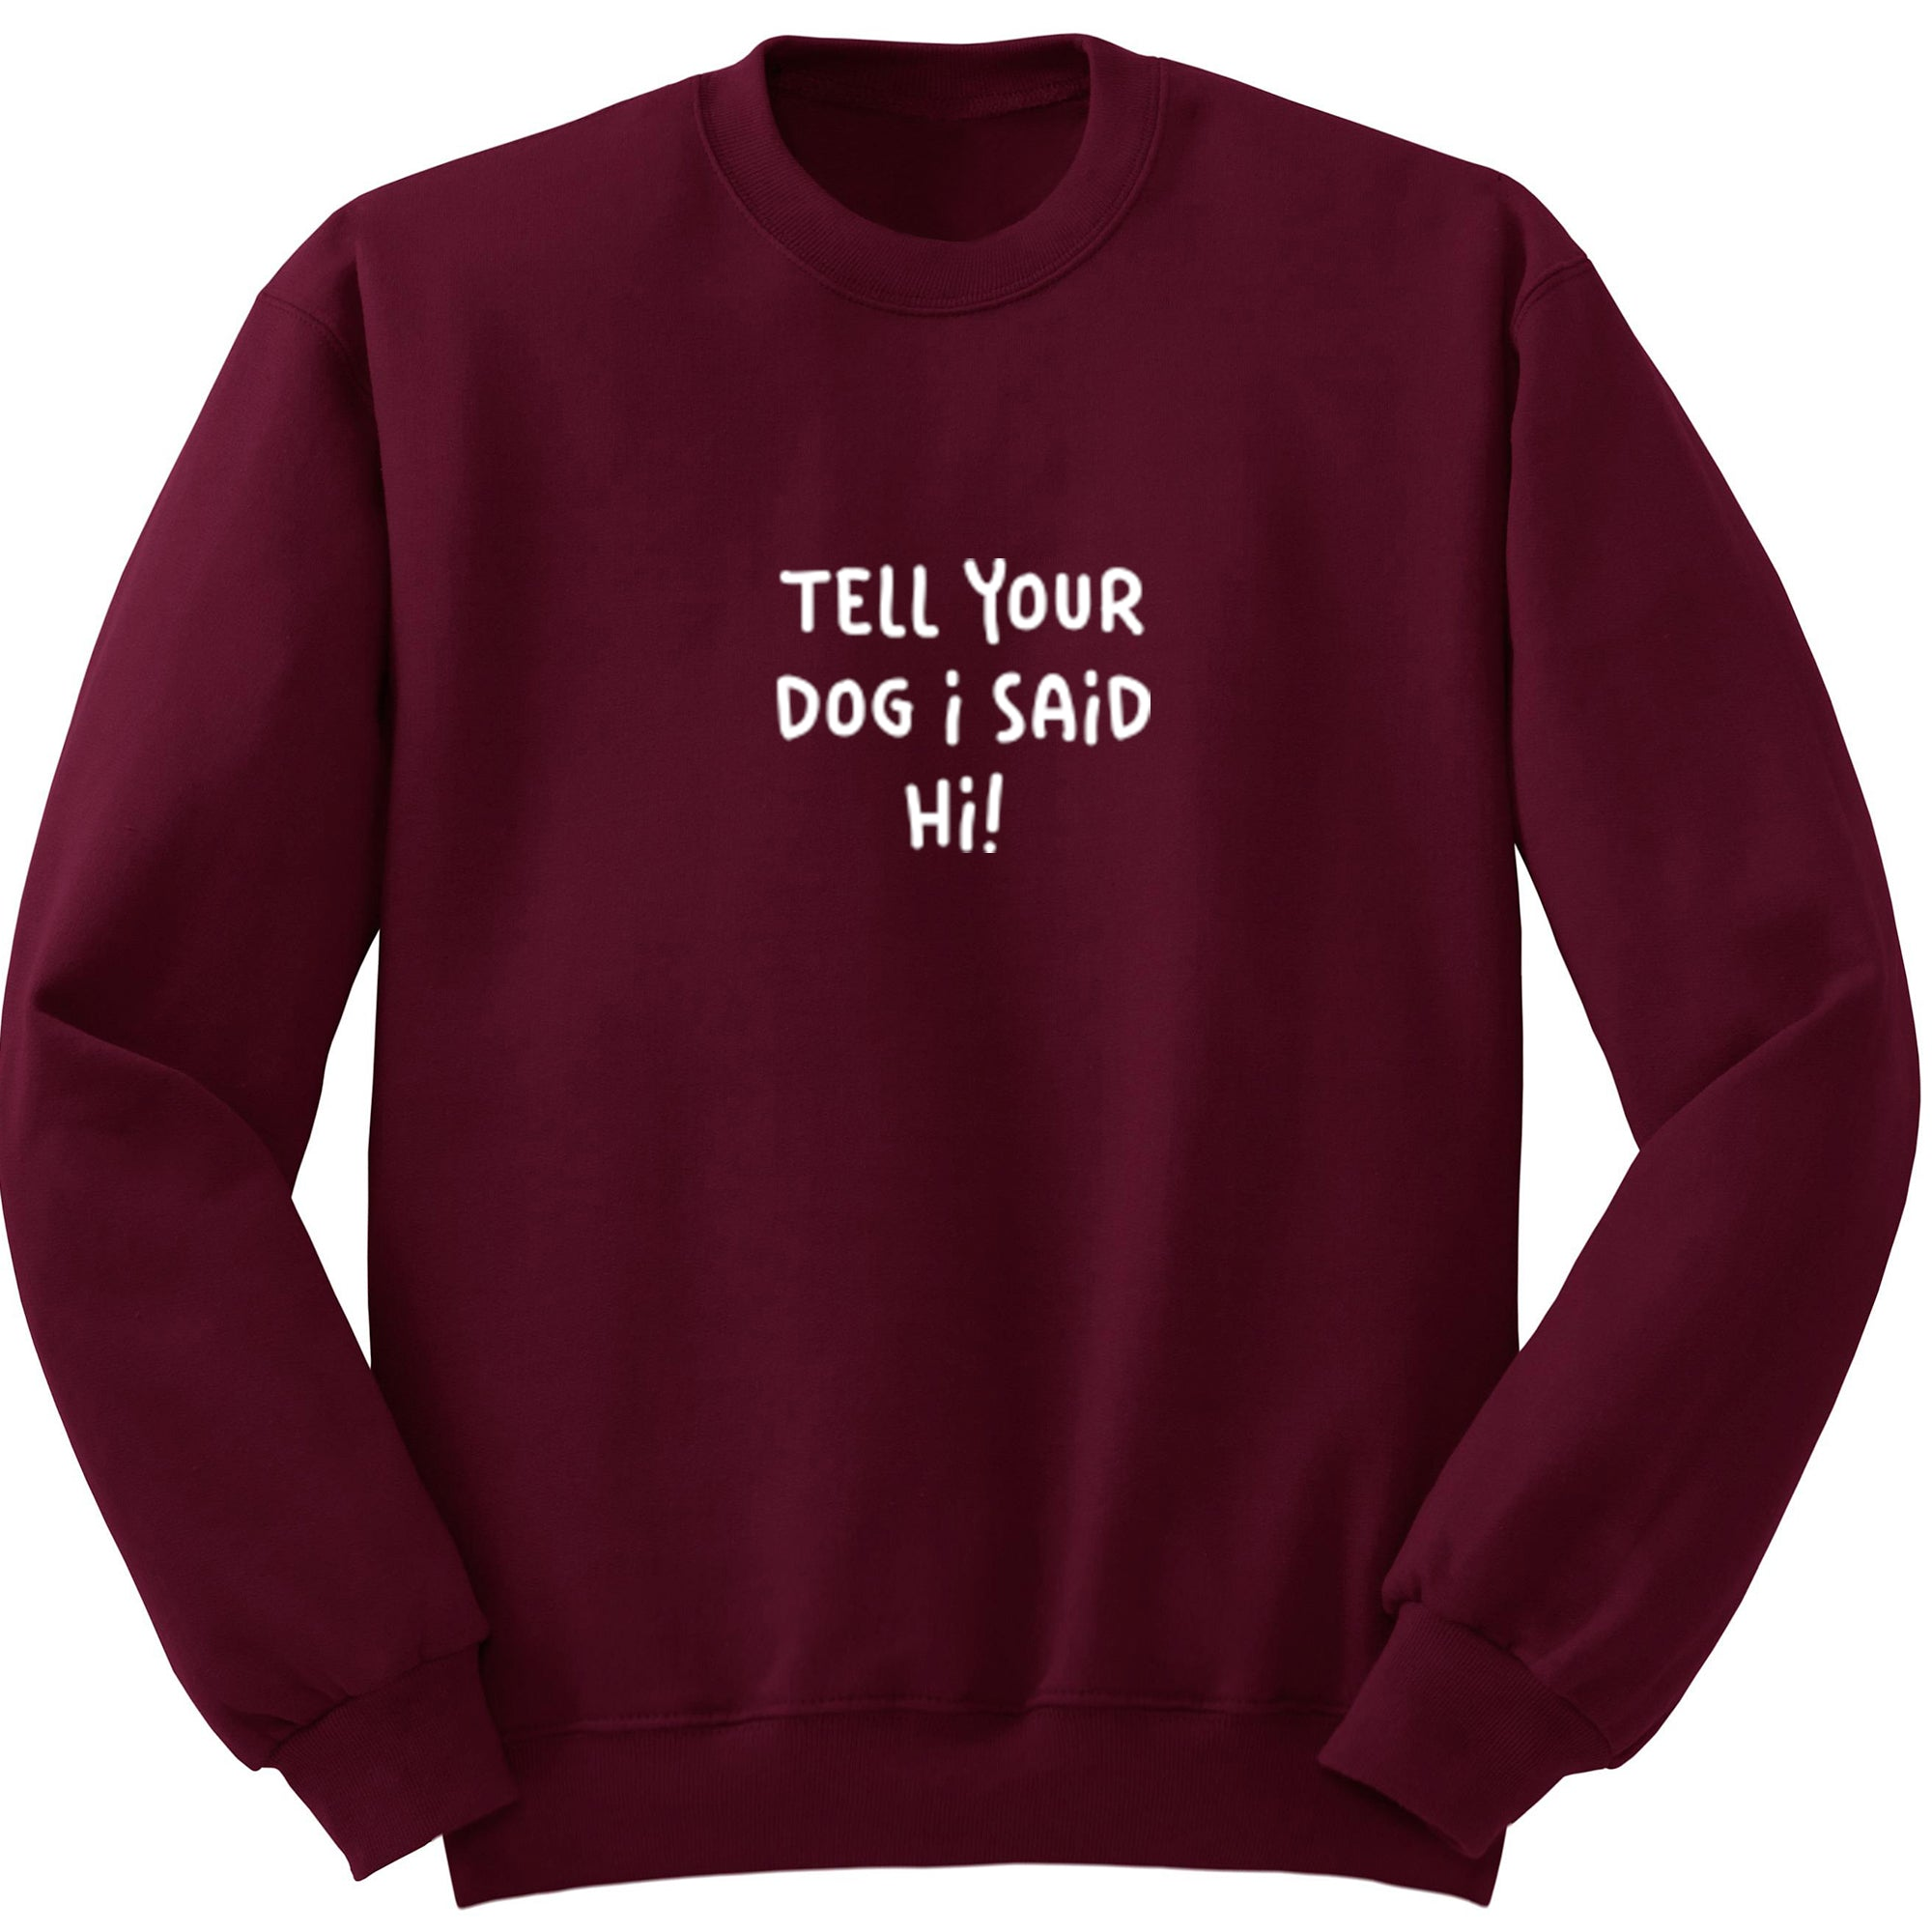 Tell Your Dog I Said Hi! Unisex Jumper S1184 - Illustrated Identity Ltd.